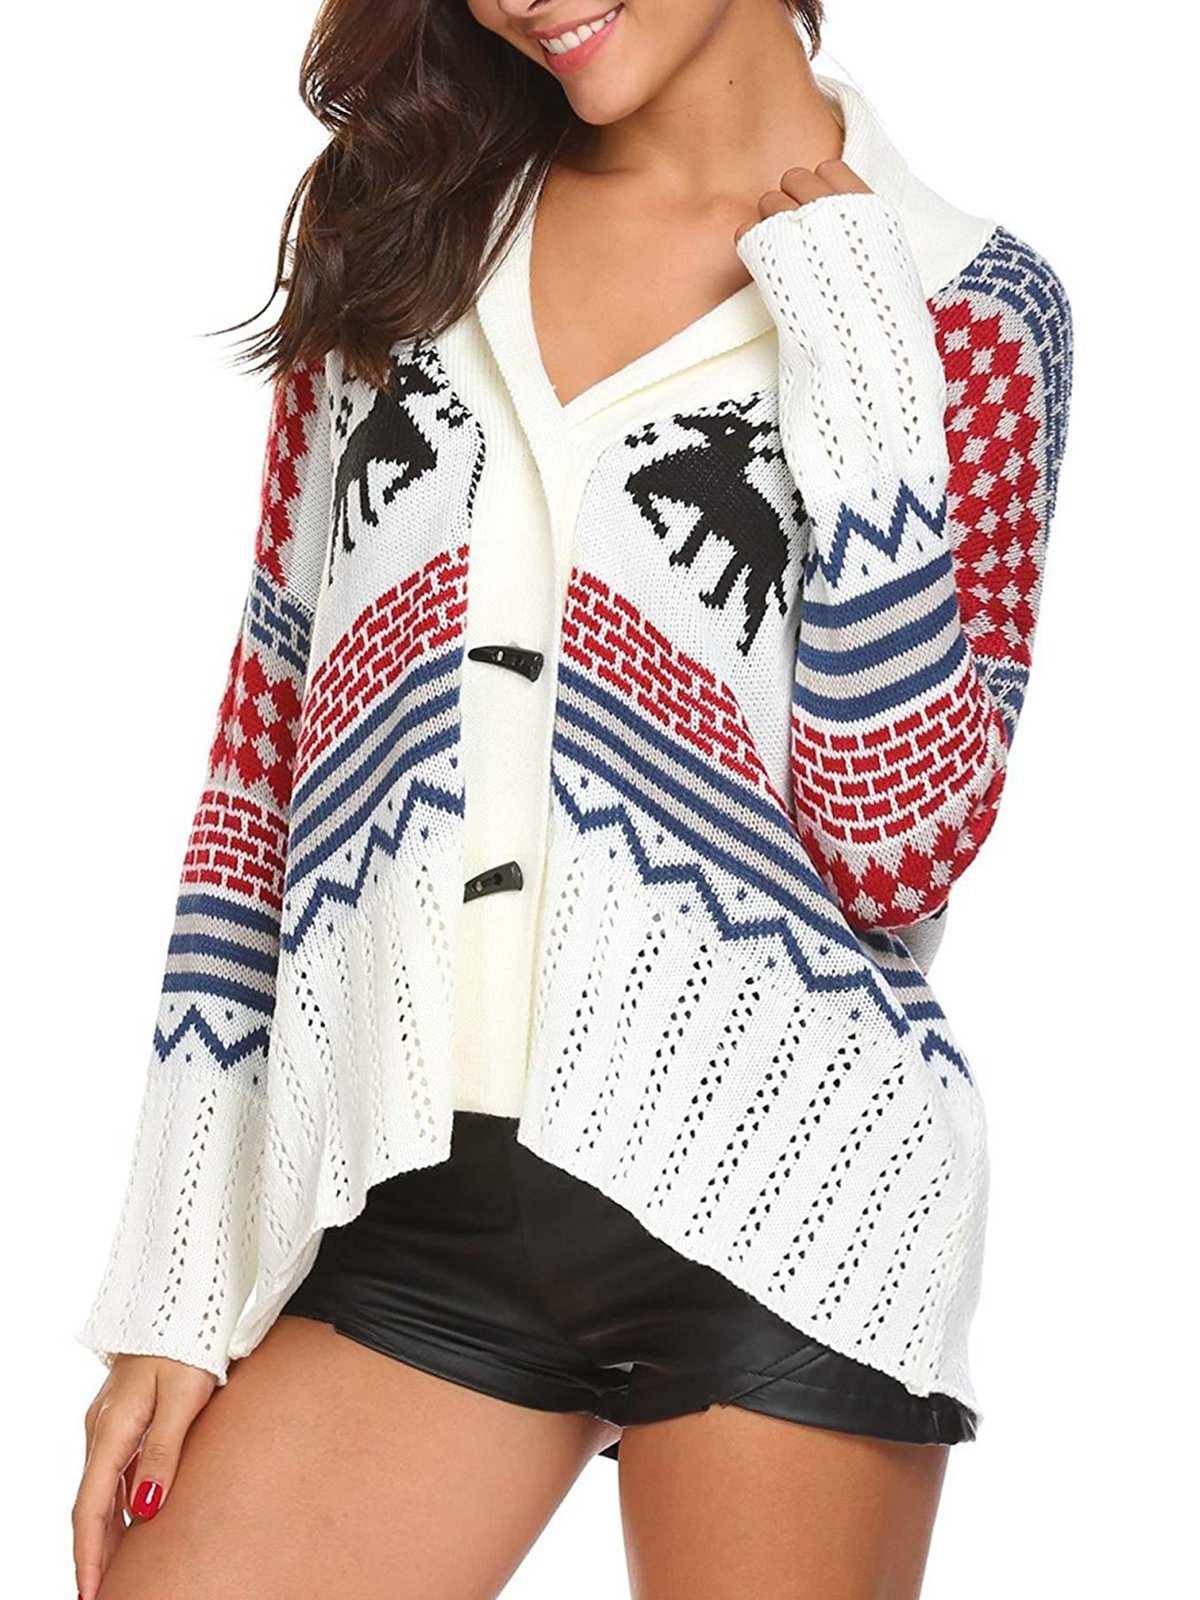 Horn-Buttoned Christmas Knit Wear Xmas Cardigans